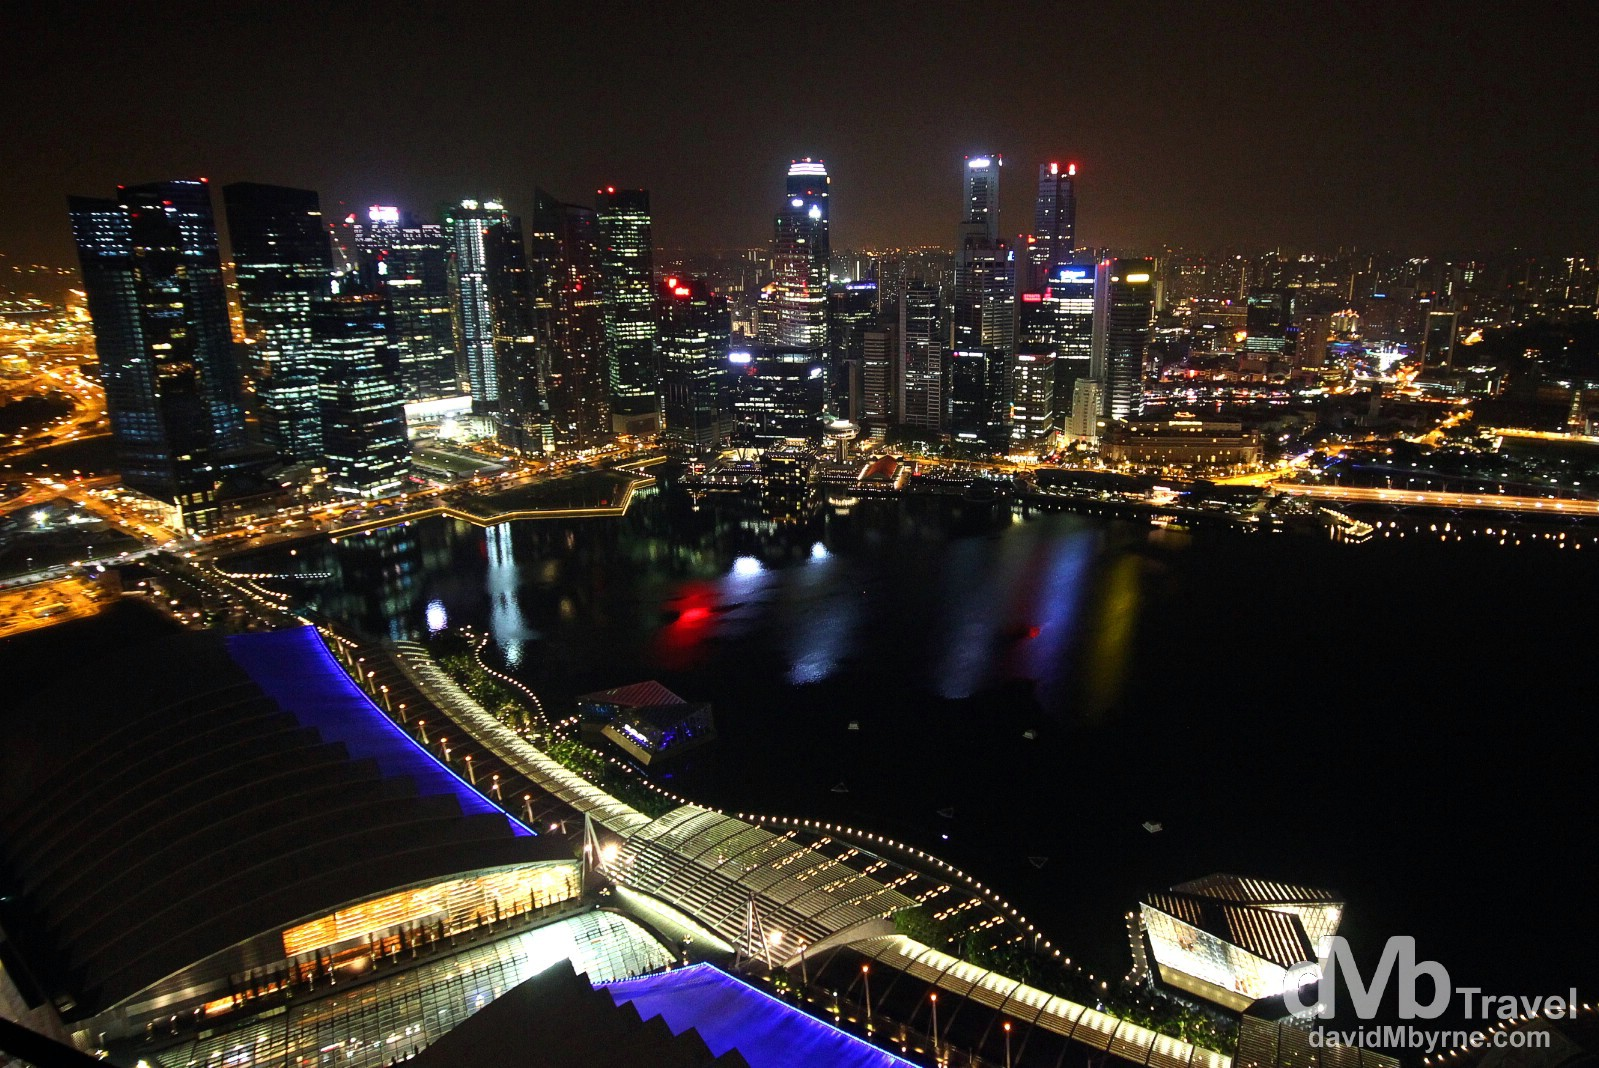 Marina Bay & the Singapore CBD skyline from the SkyPark bar Club KU DÉ TA of the Marina Bay Sands Hotel. Singapore. March 28th 2102.